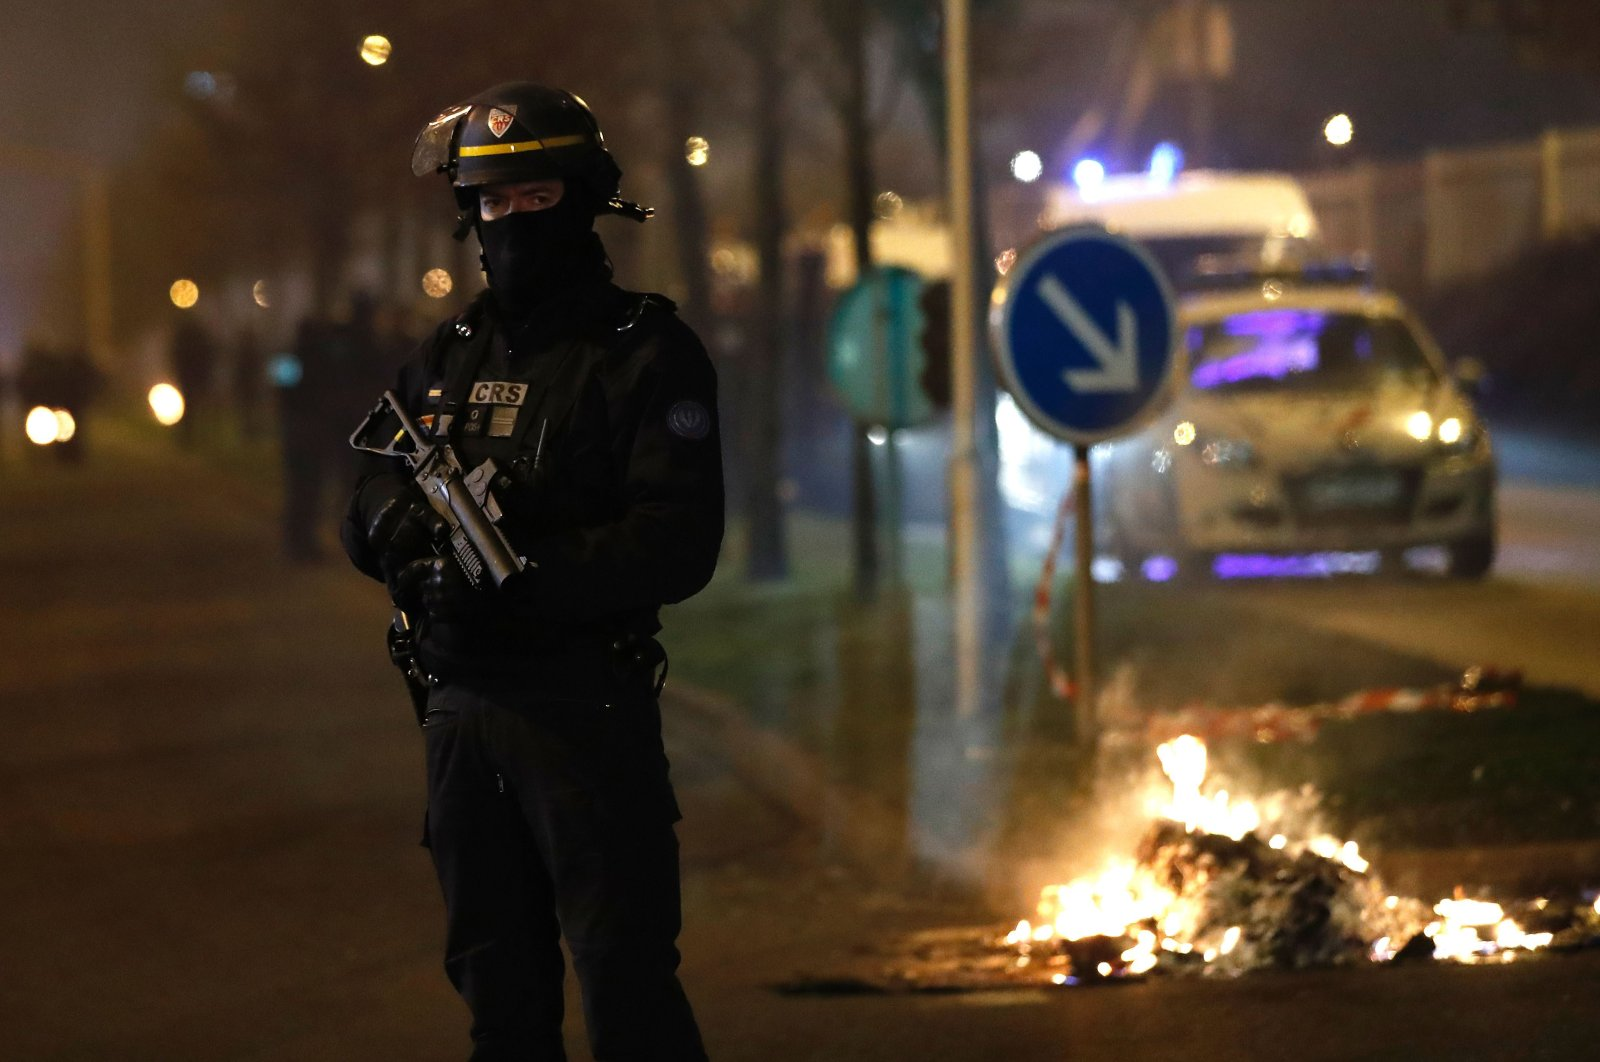 A French riot police officer secures the area during a protest in Bobigny, a district of northeast Paris, Feb. 11, 2017. (AFP Photo)